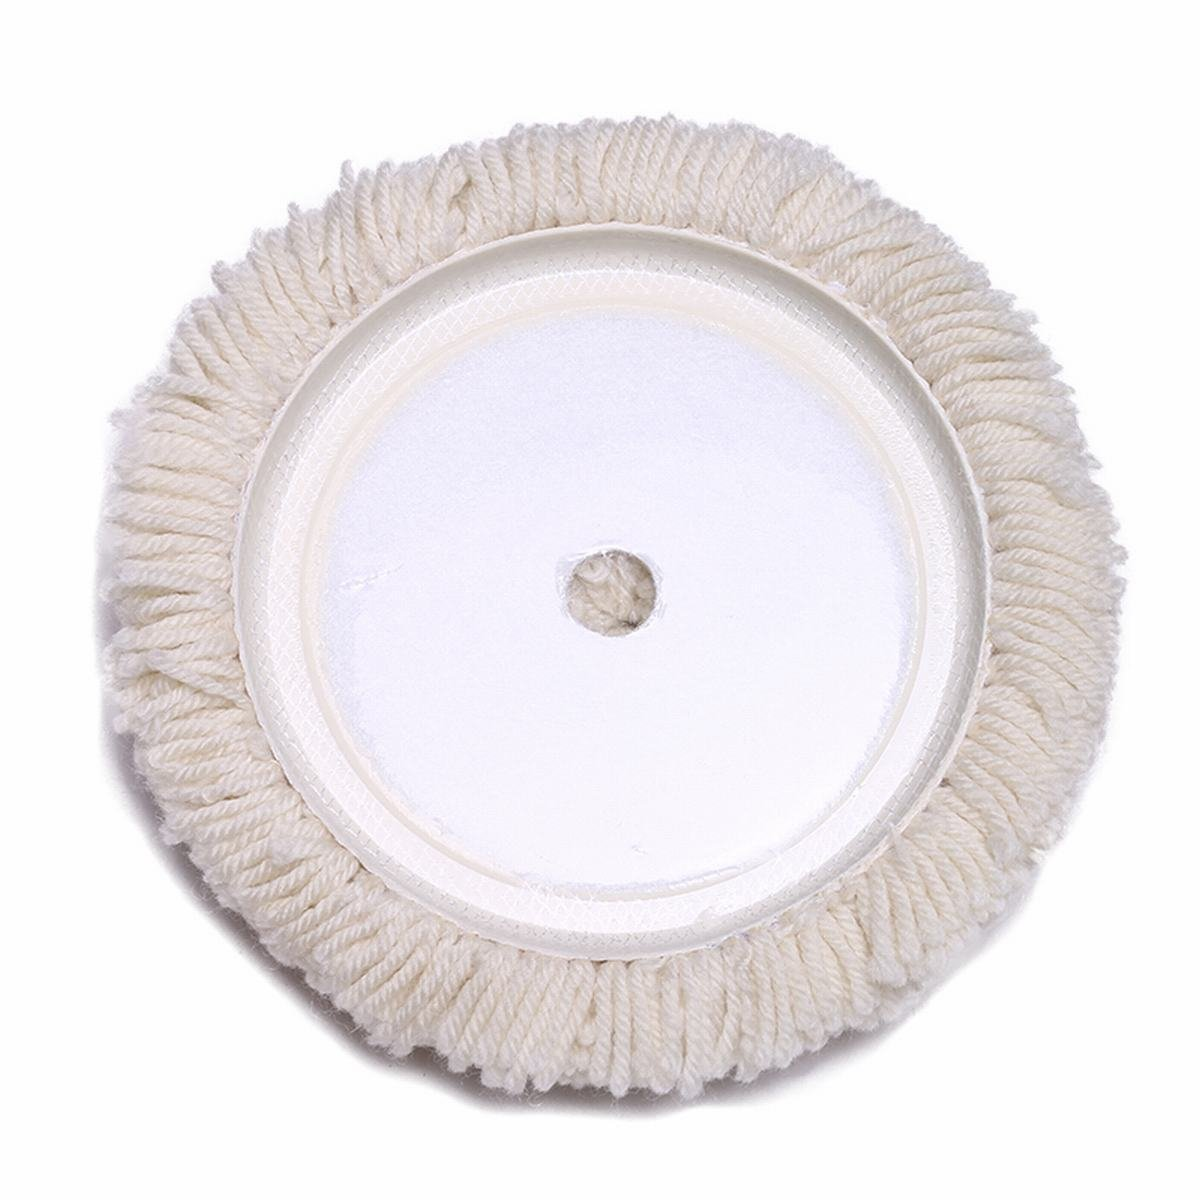 Gracefur Hook and Loop 100/% Wool Polishing Buffing Pad 7 Soft Reusable Single Sided Wool Cutting Pad for Compound Cutting /& Polishing Cream